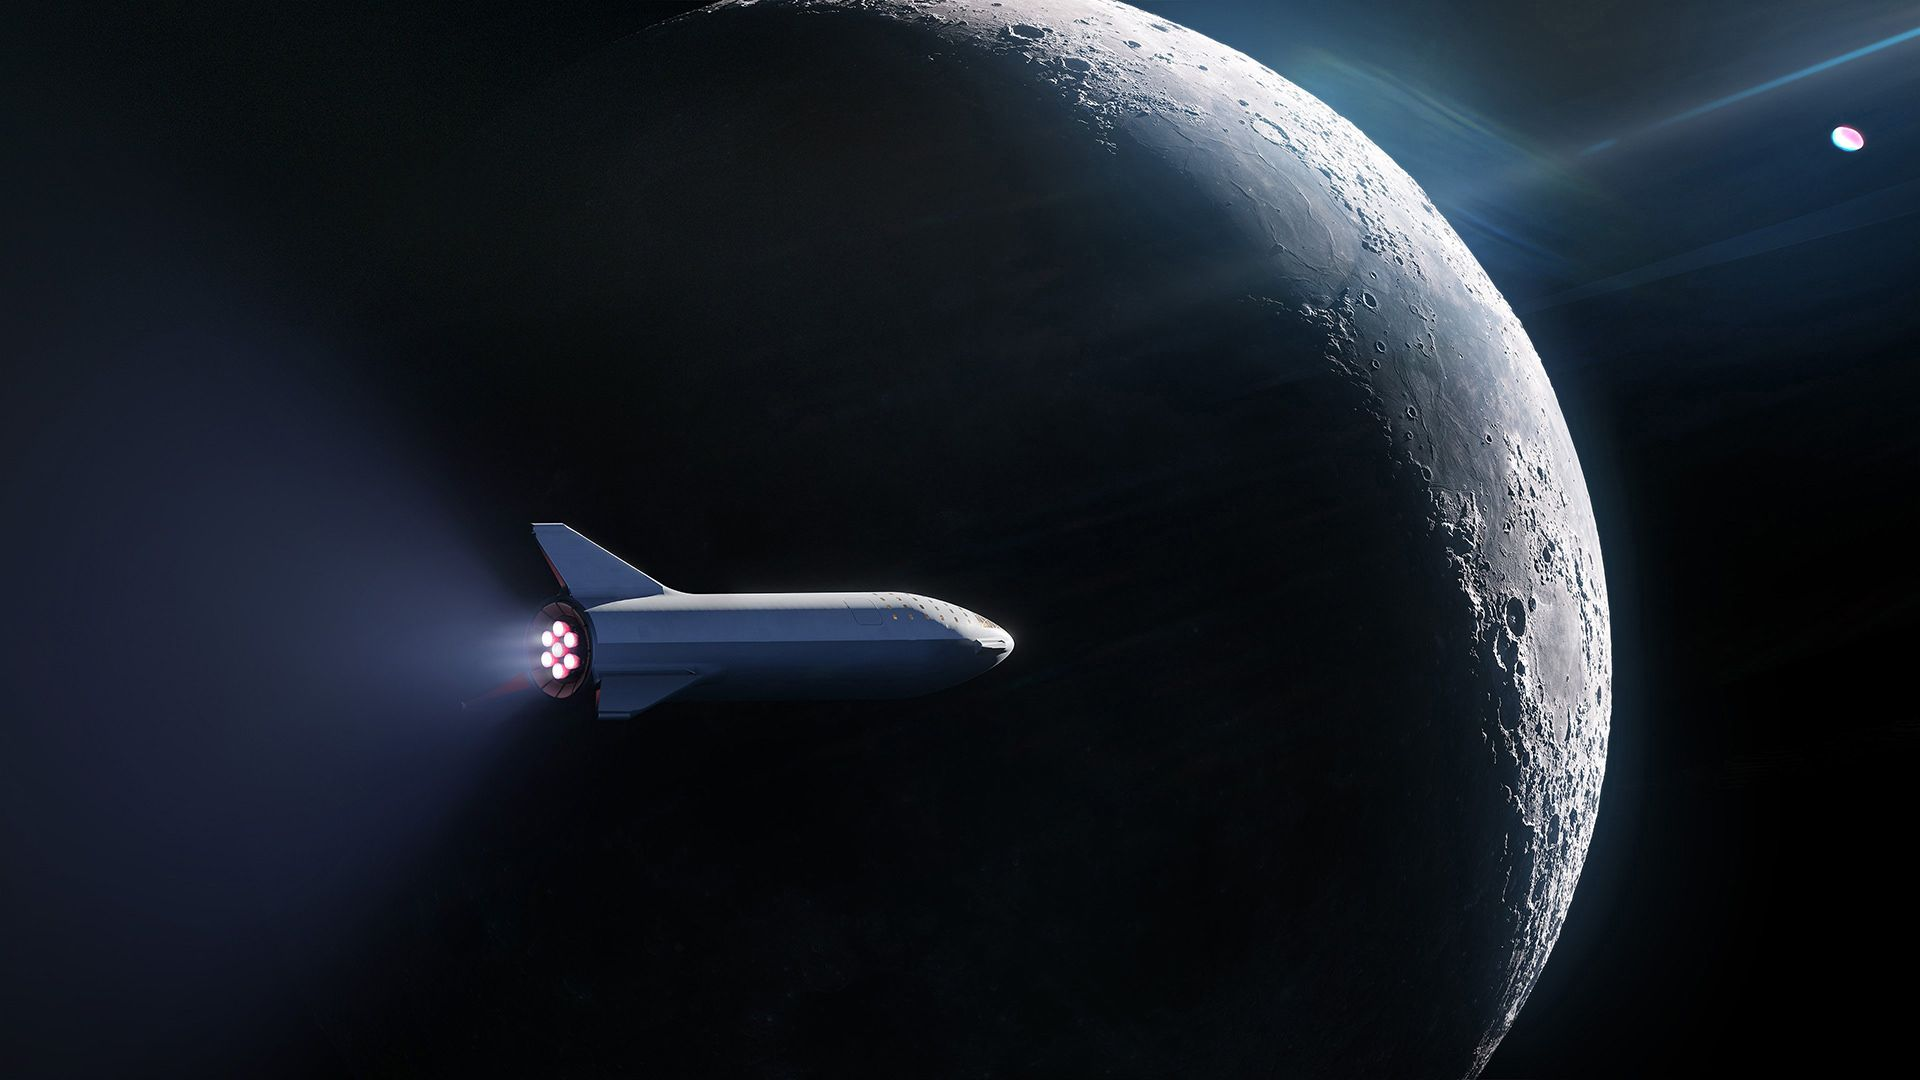 I Made A 1920x1080 And A 2560x1440 Wallpaper Out Of The New Bfr Concept Art Need Trendy Iphone7 Iphone7plus Case Check Spacex Moon Missions Spacex Starship